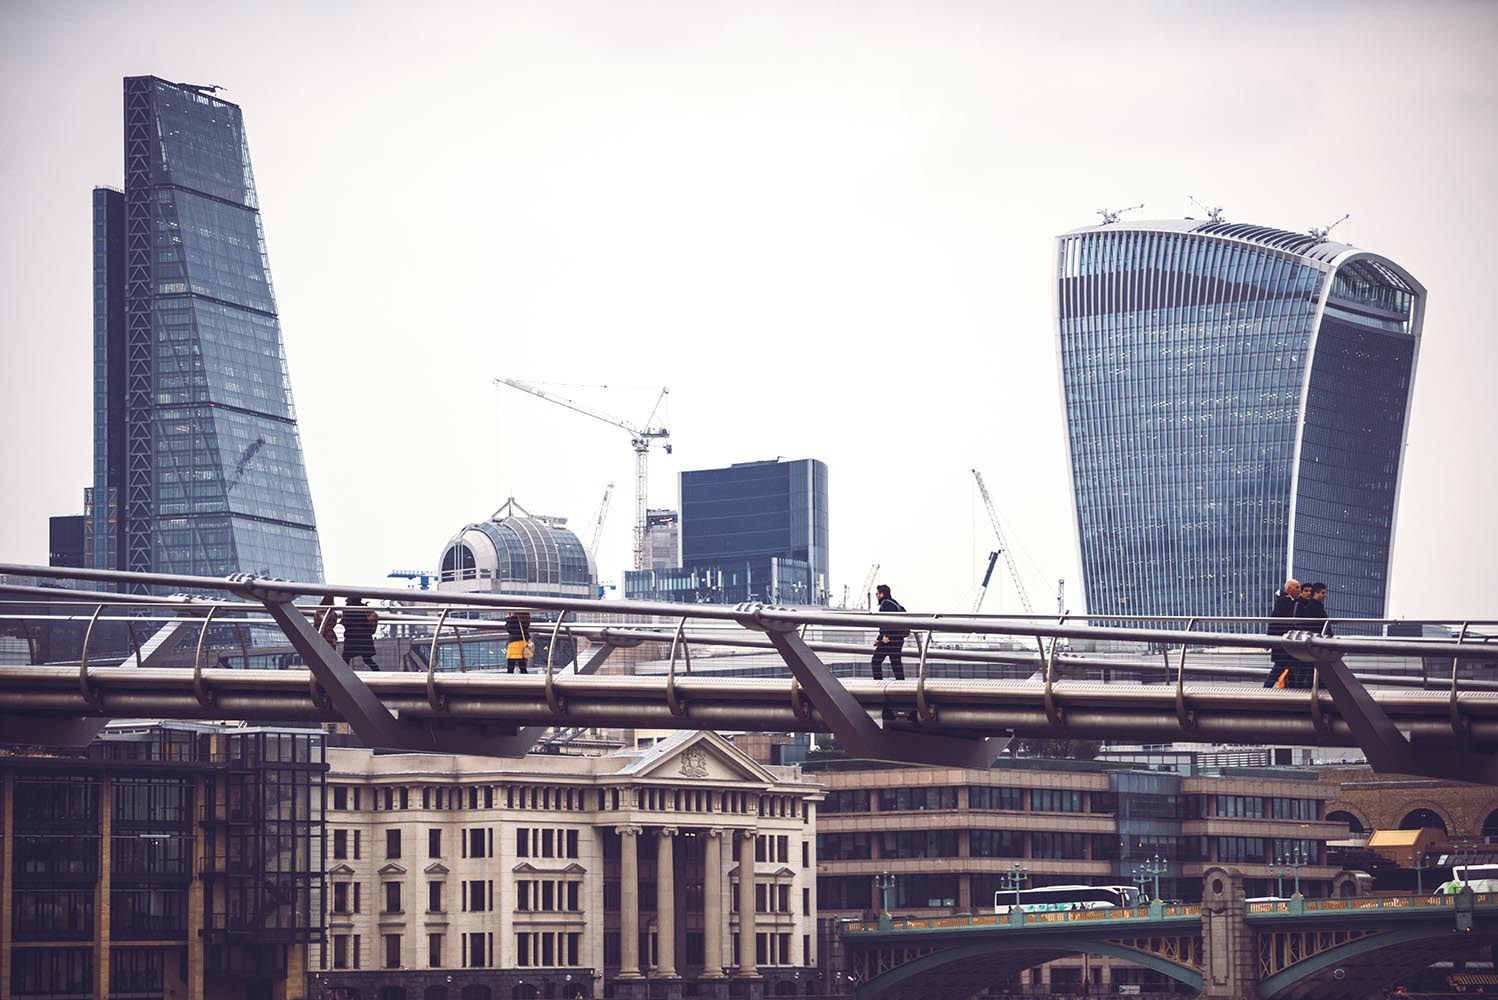 Skyline view of London's conceptual glass skyscrapers and pedest